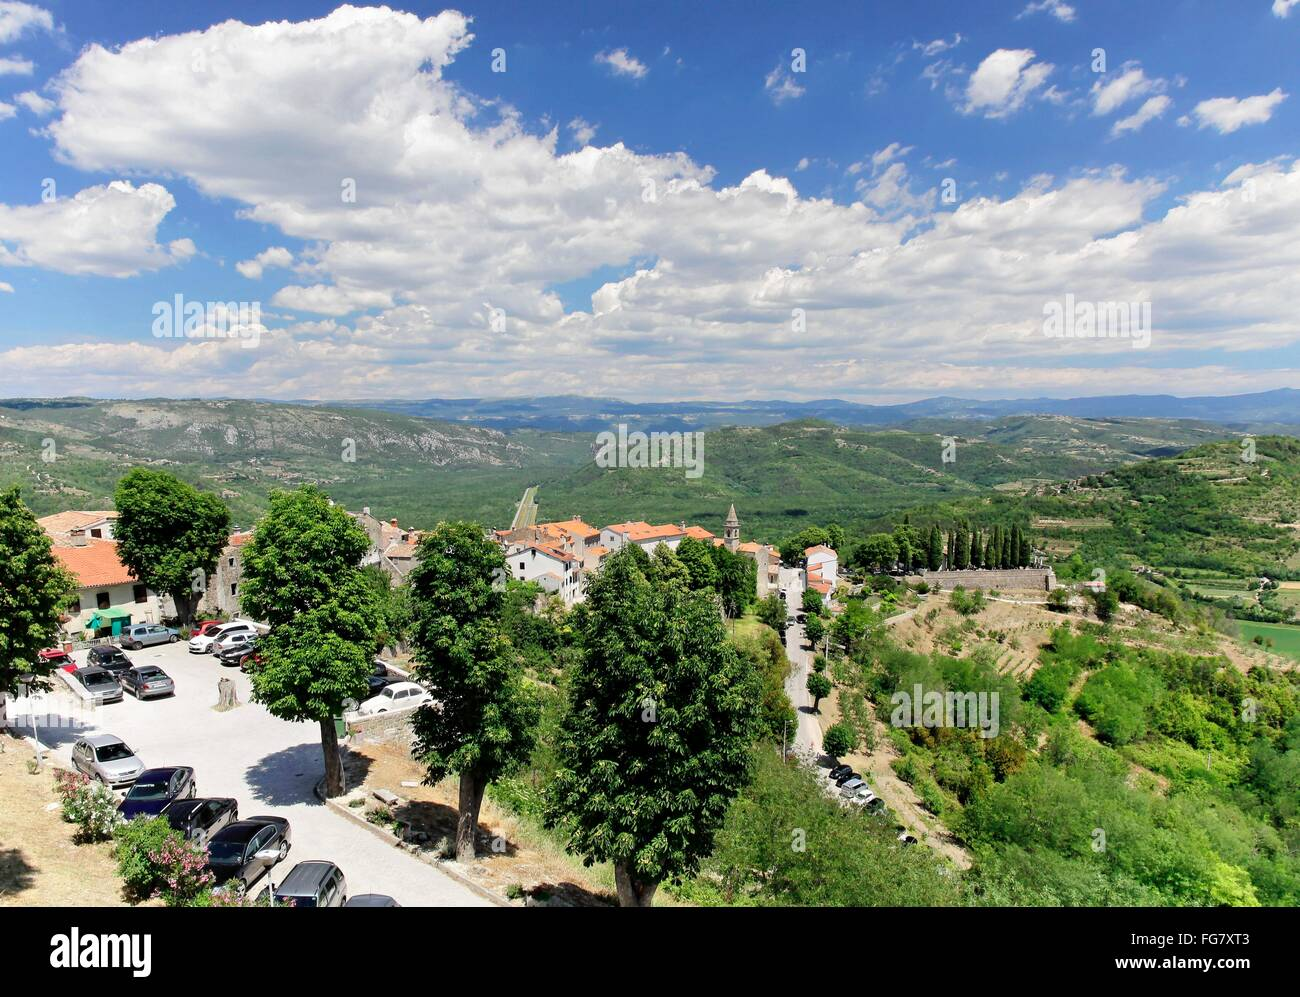 Géographie / voyages, Croatie, Istrie, Additional-Rights Clearance-Info-Motovun,-Not-Available Photo Stock